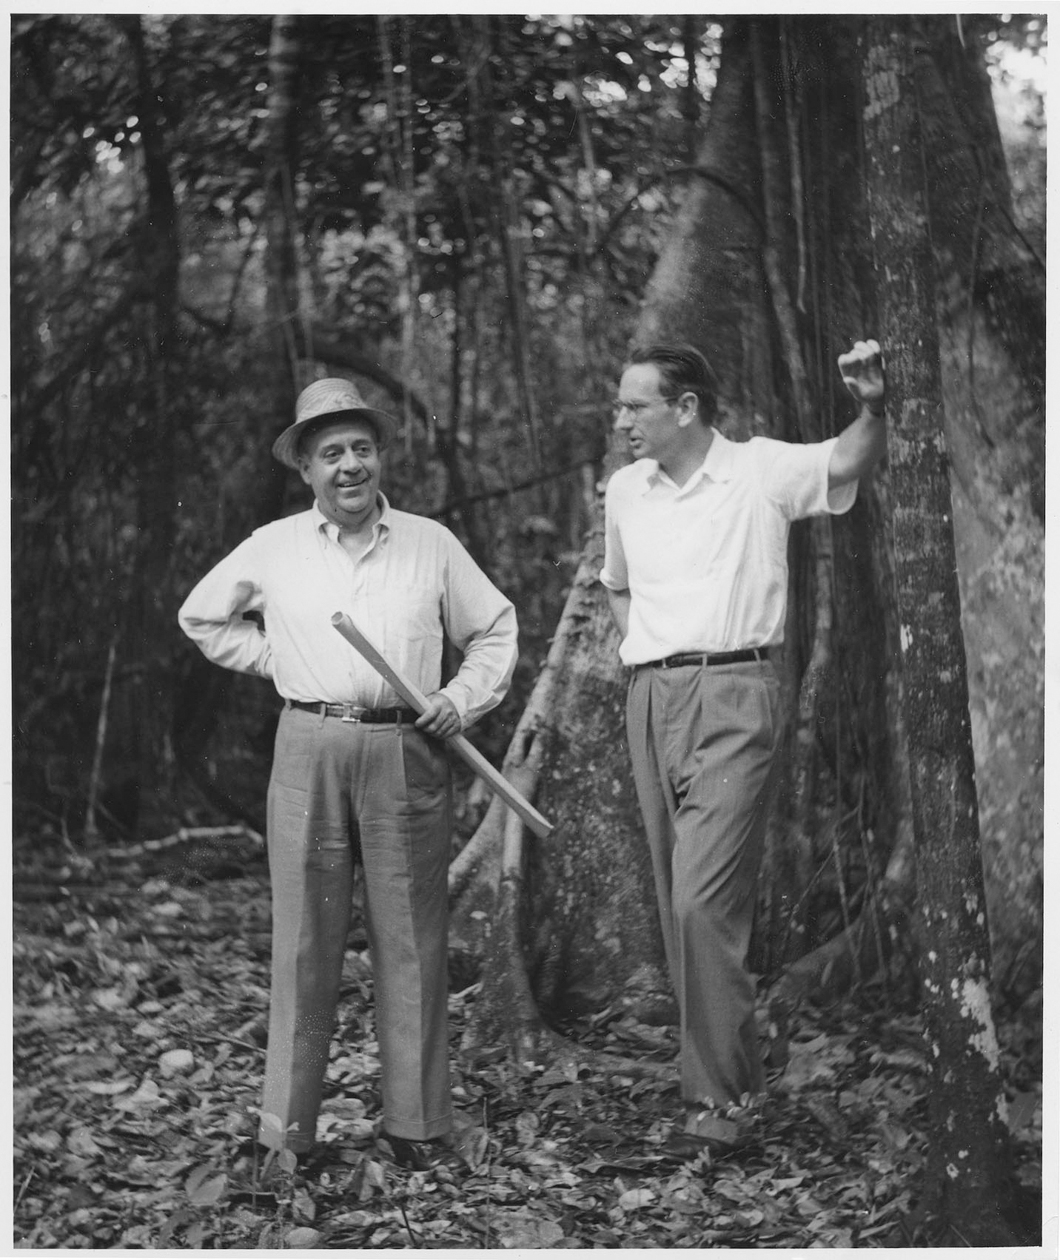 Architect Robert Trent Jones Sr. (left) and Laurance S. Rockefeller discuss plans in the early days of Dorado Beach.